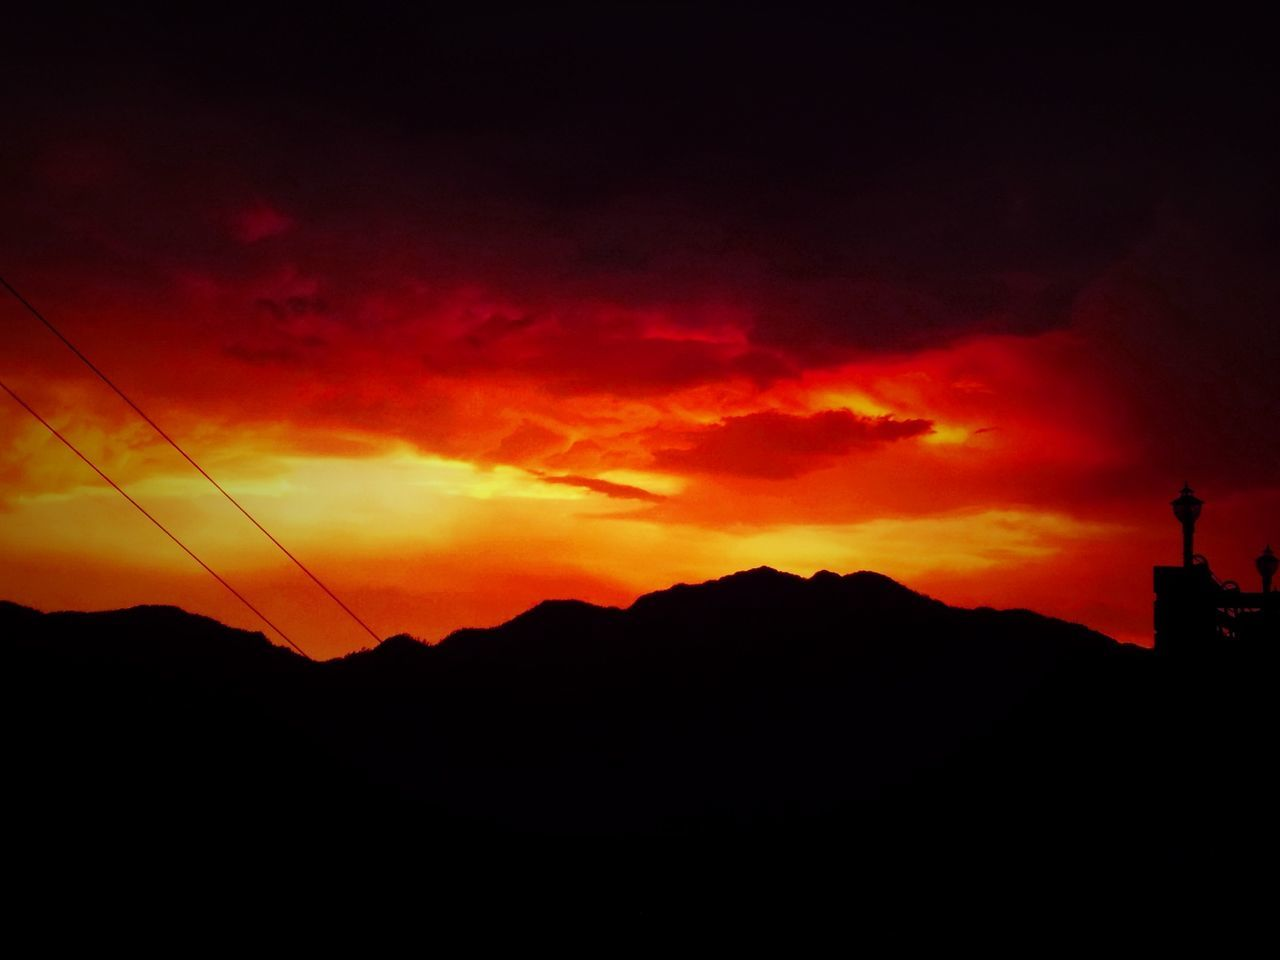 sunset, silhouette, orange color, nature, beauty in nature, sky, scenics, outdoors, no people, tranquil scene, tranquility, mountain, flame